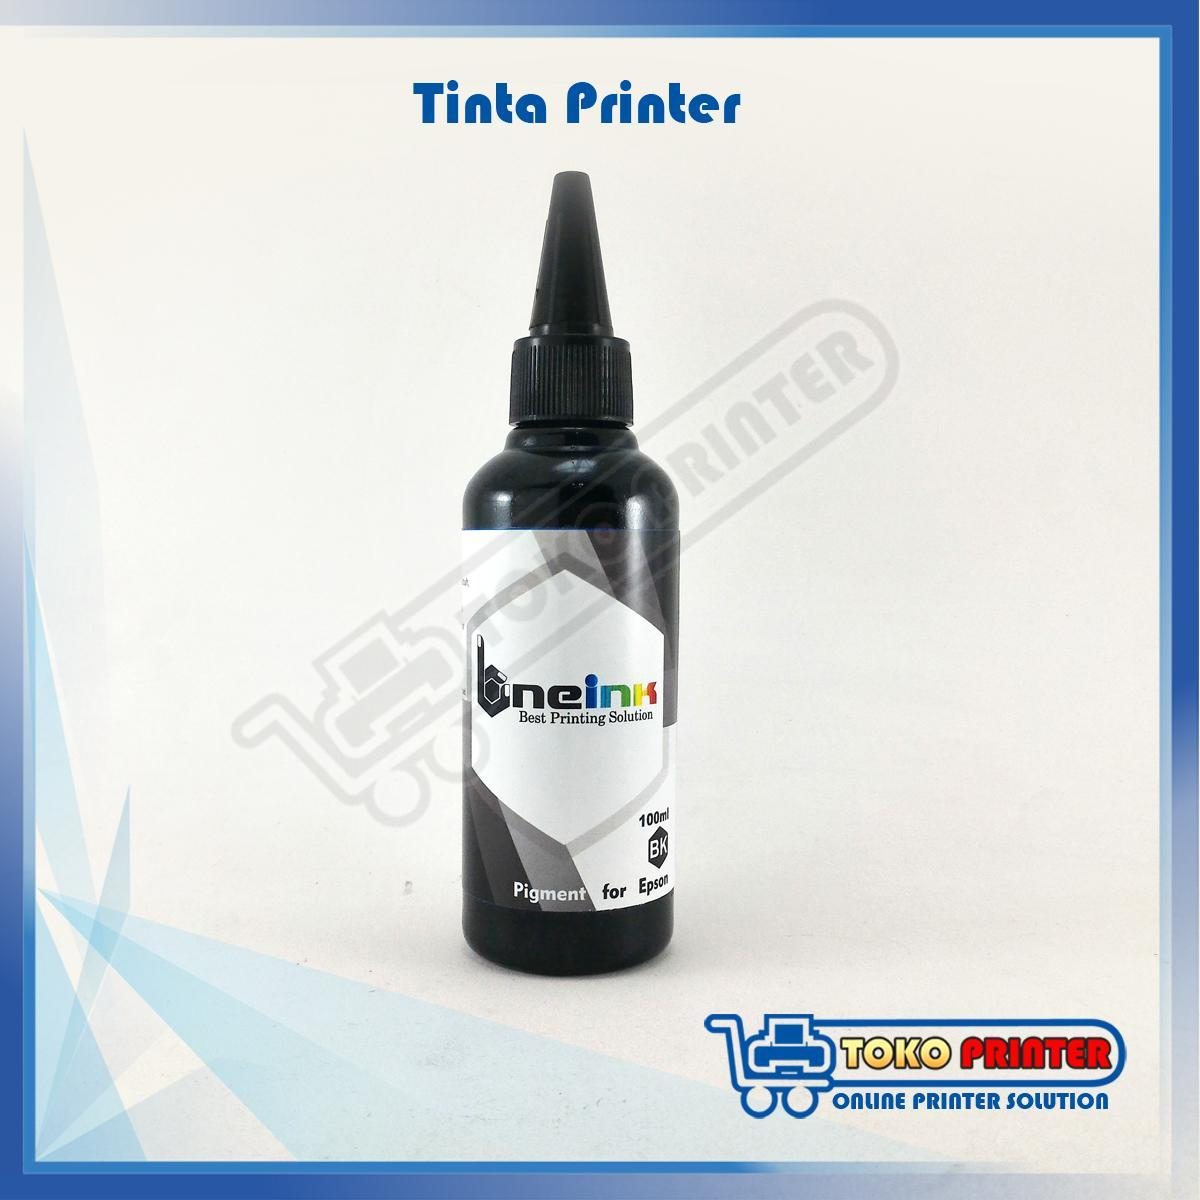 Tinta Pigment One Ink Epson 100ml Black